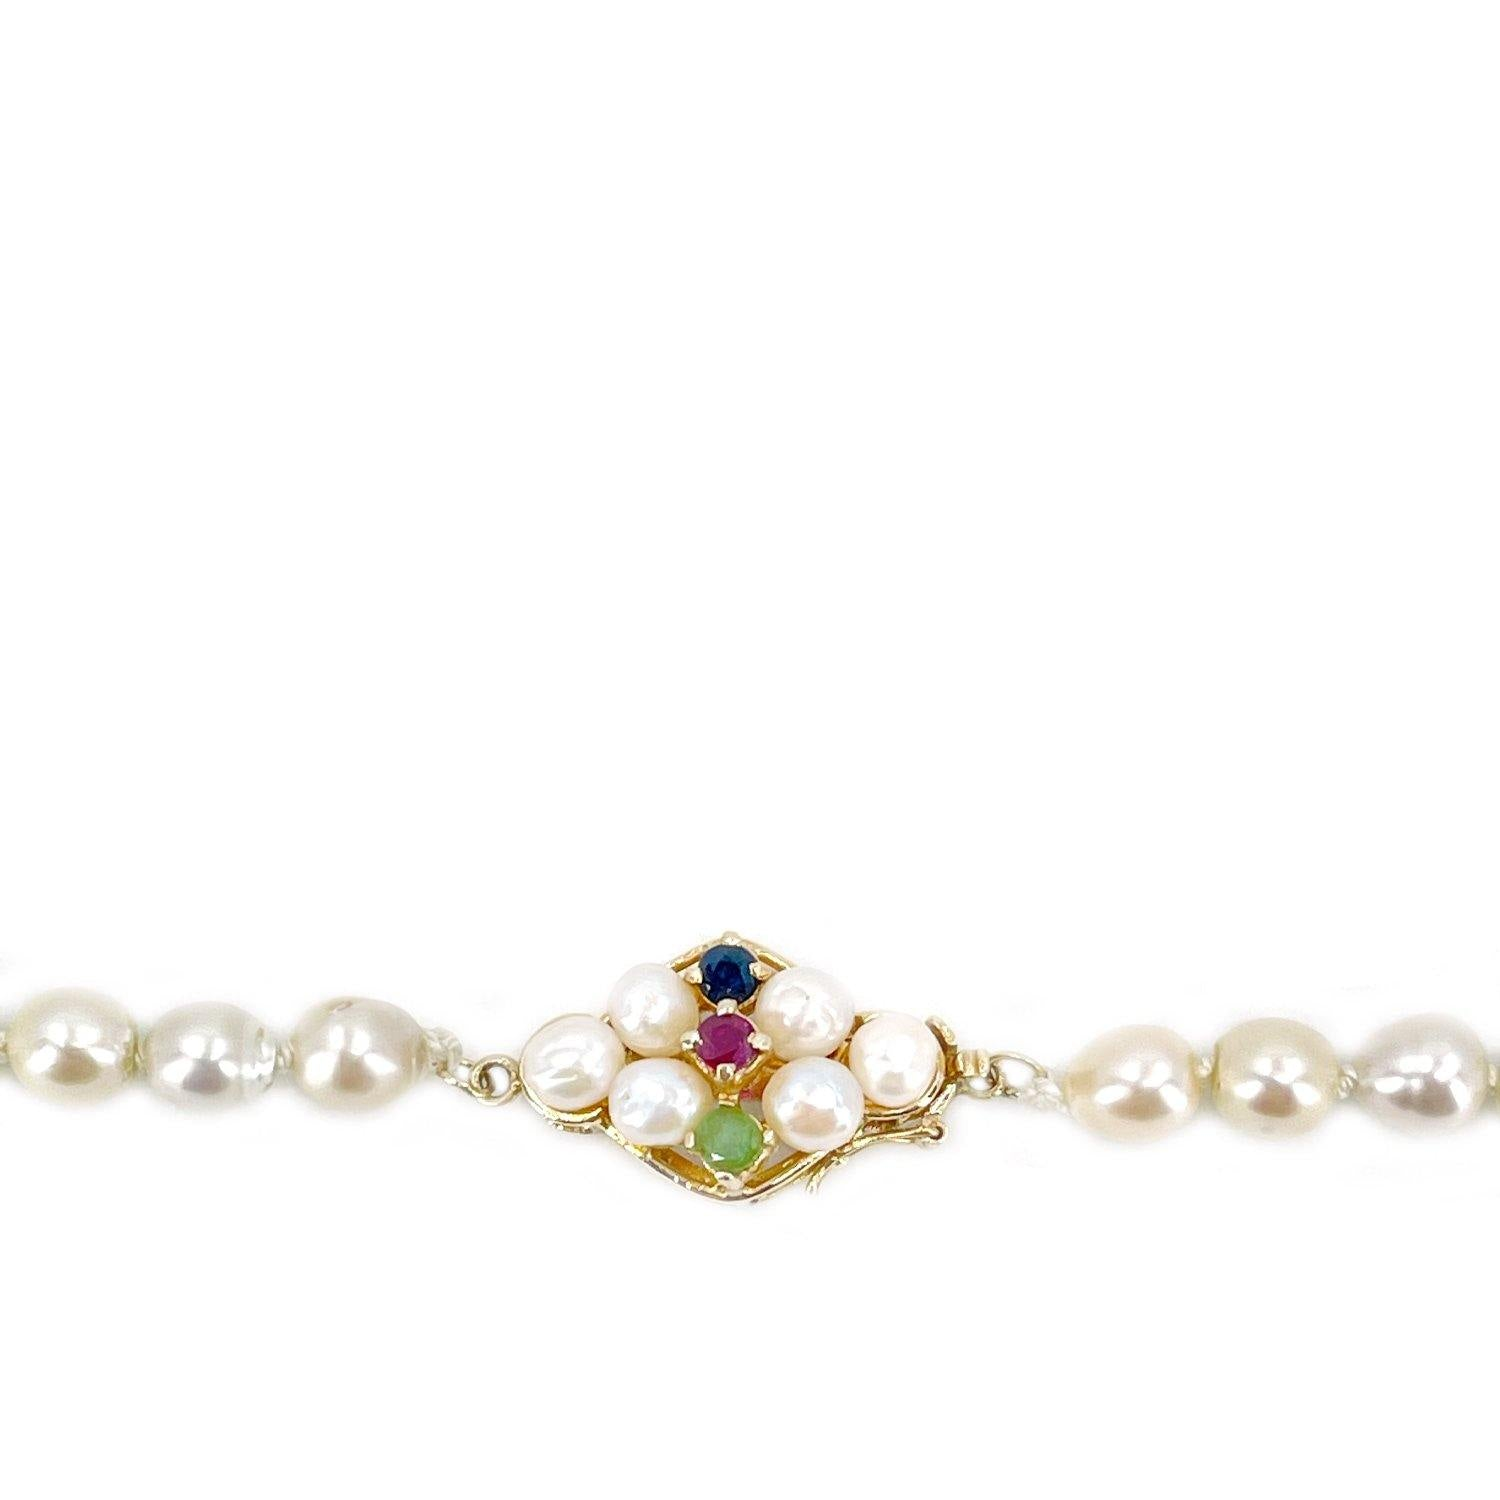 Ruby, Emerald & Sapphire Graduated Japanese Saltwater Cultured Akoya Pearl Strand - 14K Yellow Gold 29 Inch